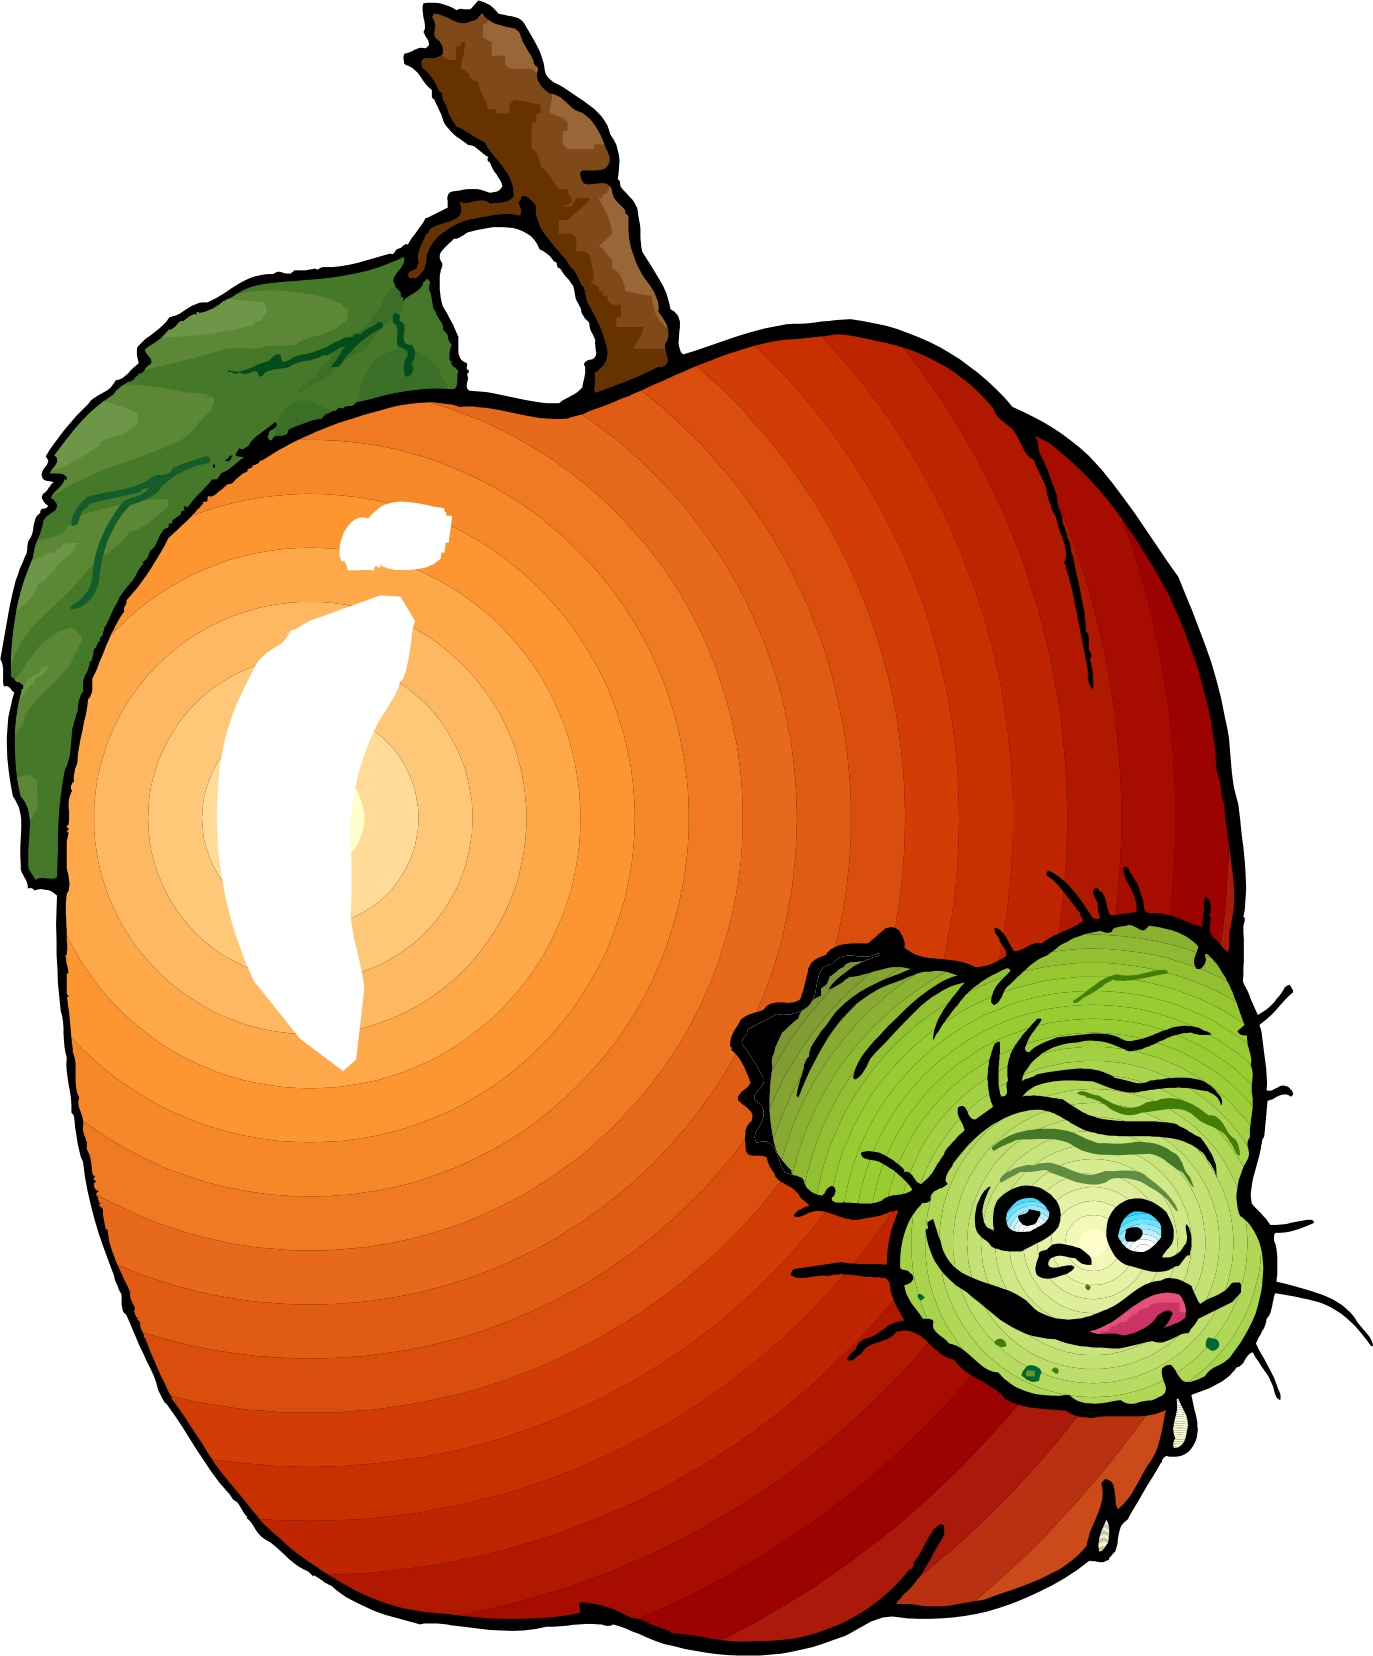 Rotten grapefruit. Collection of orchard clipart